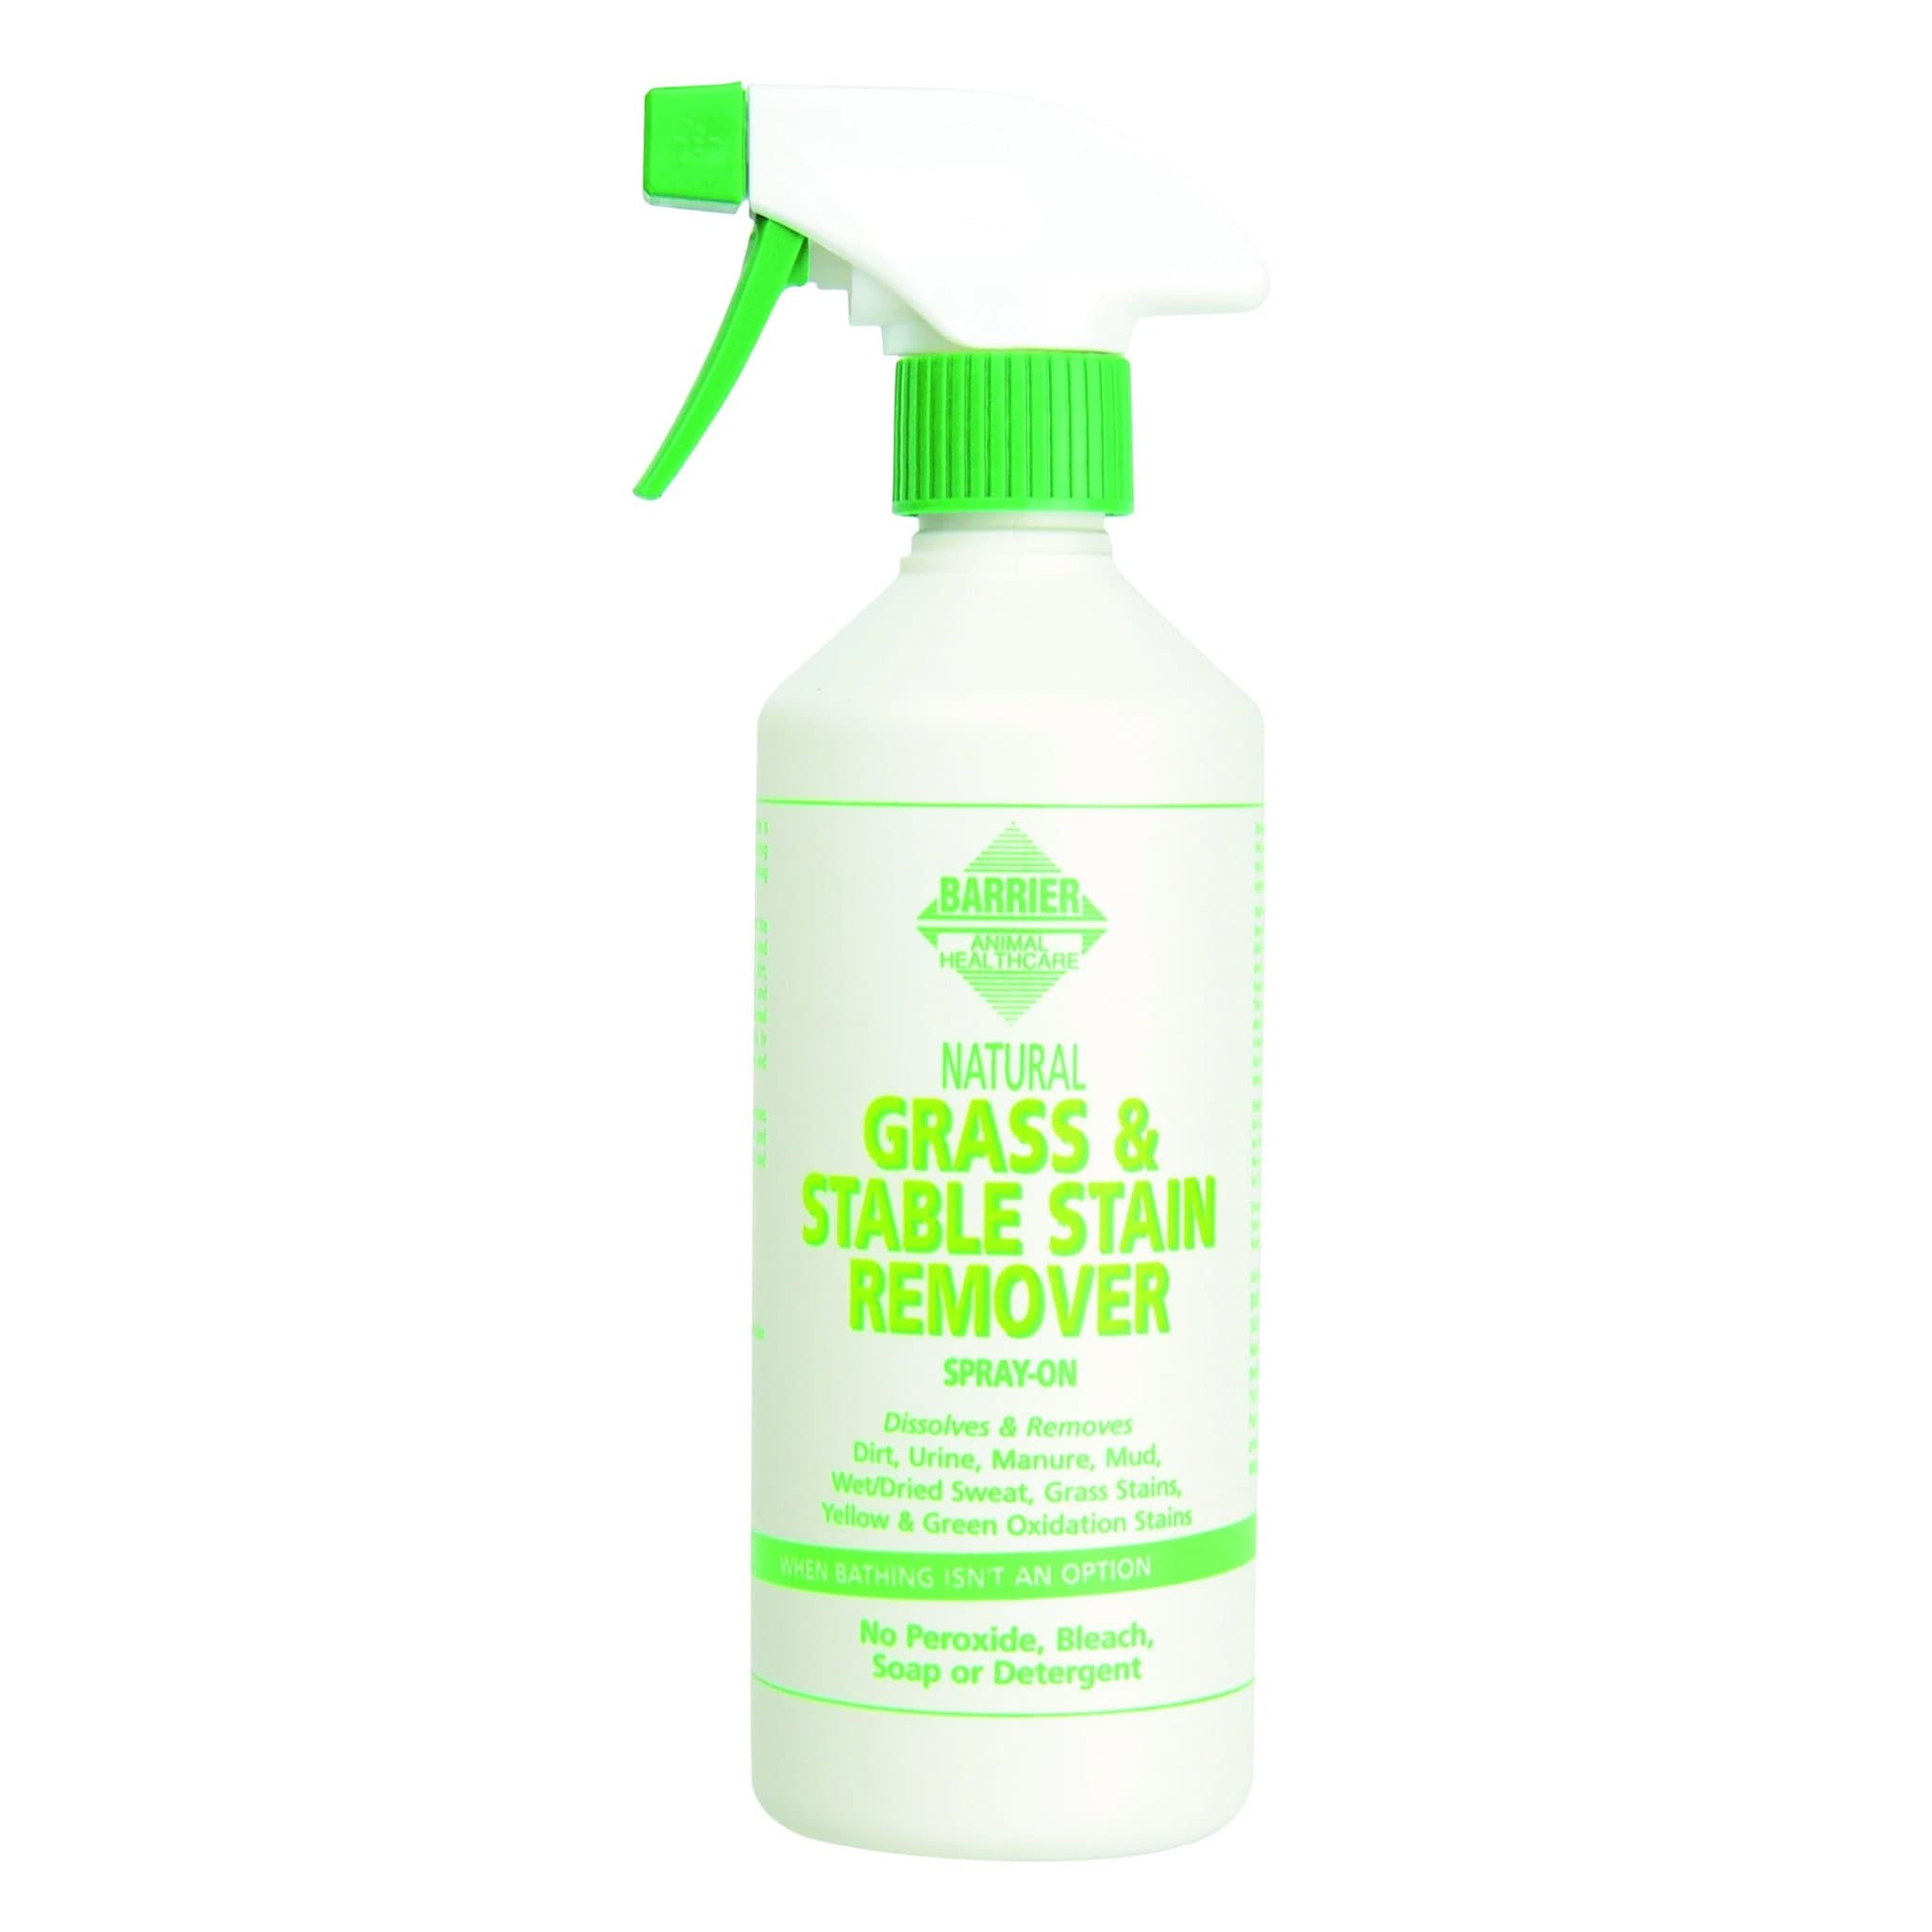 Https Daily Products 3m Palomino Tinela Handbag Mud Barrier Grass Stable Stain Remover 8410v1489581781